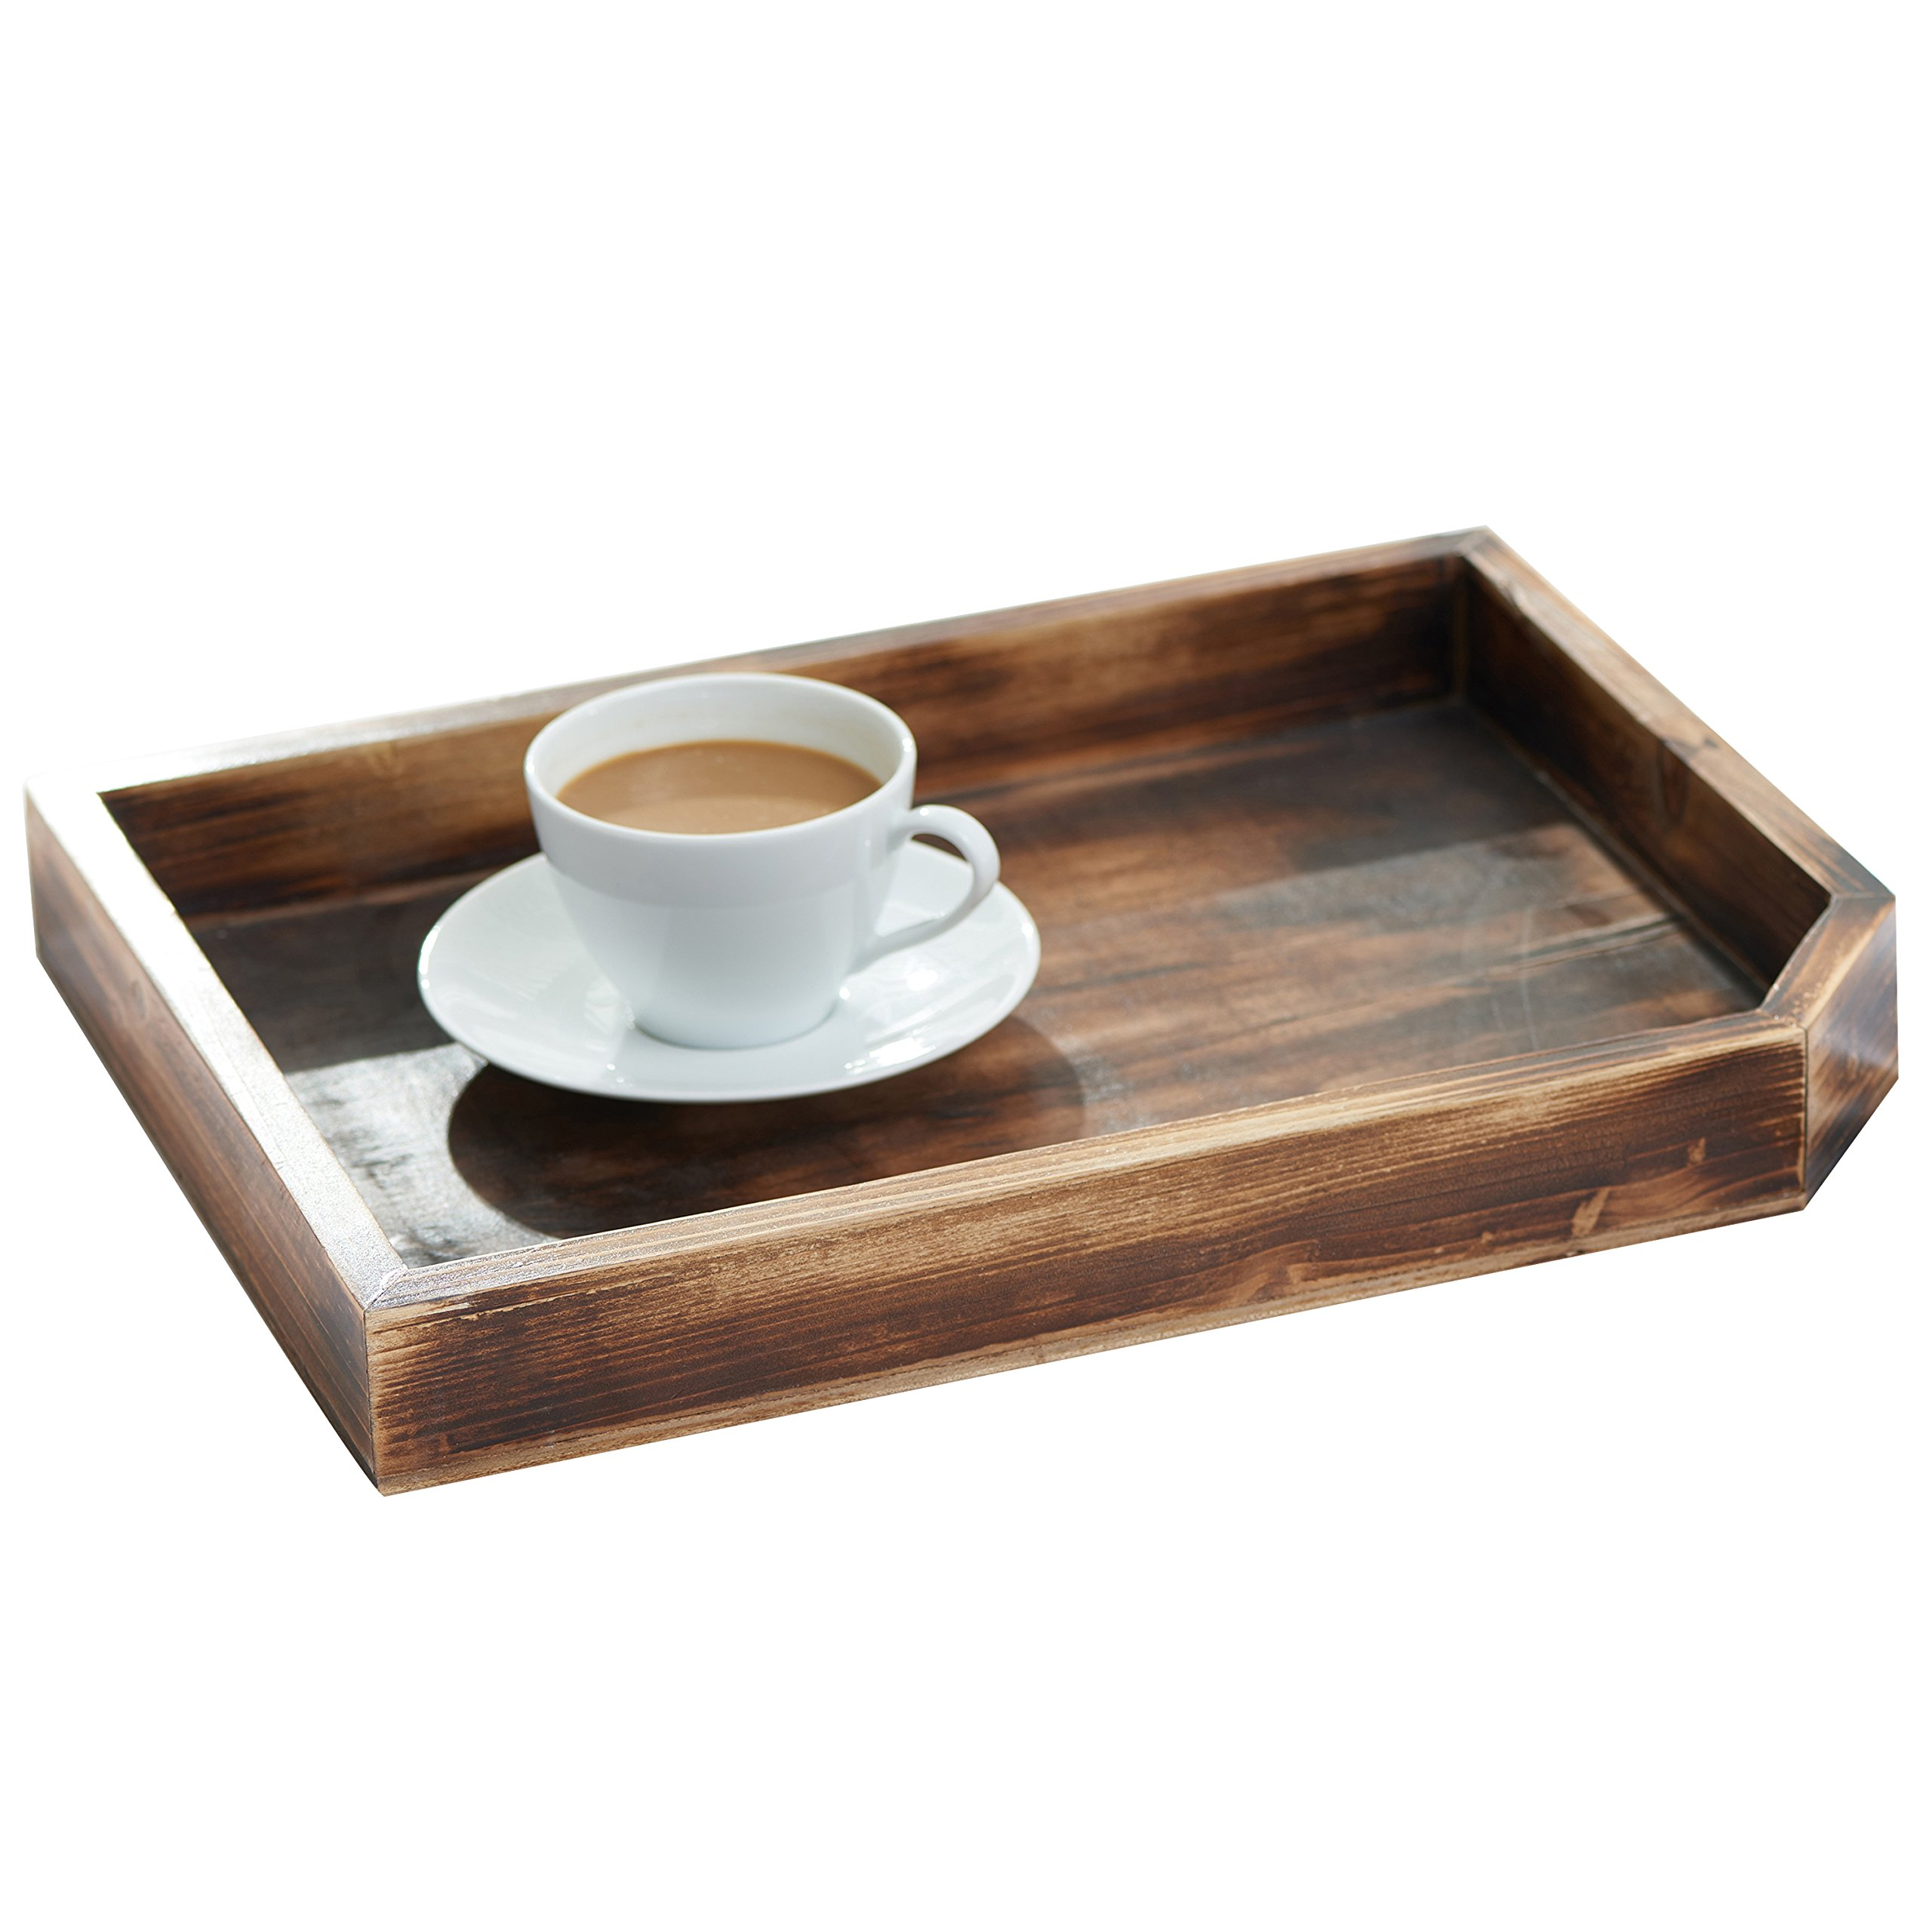 Vintage Wooden Coffee Table Display Tray / Wood Magazine and Document Holder, Dark Brown by MyGift